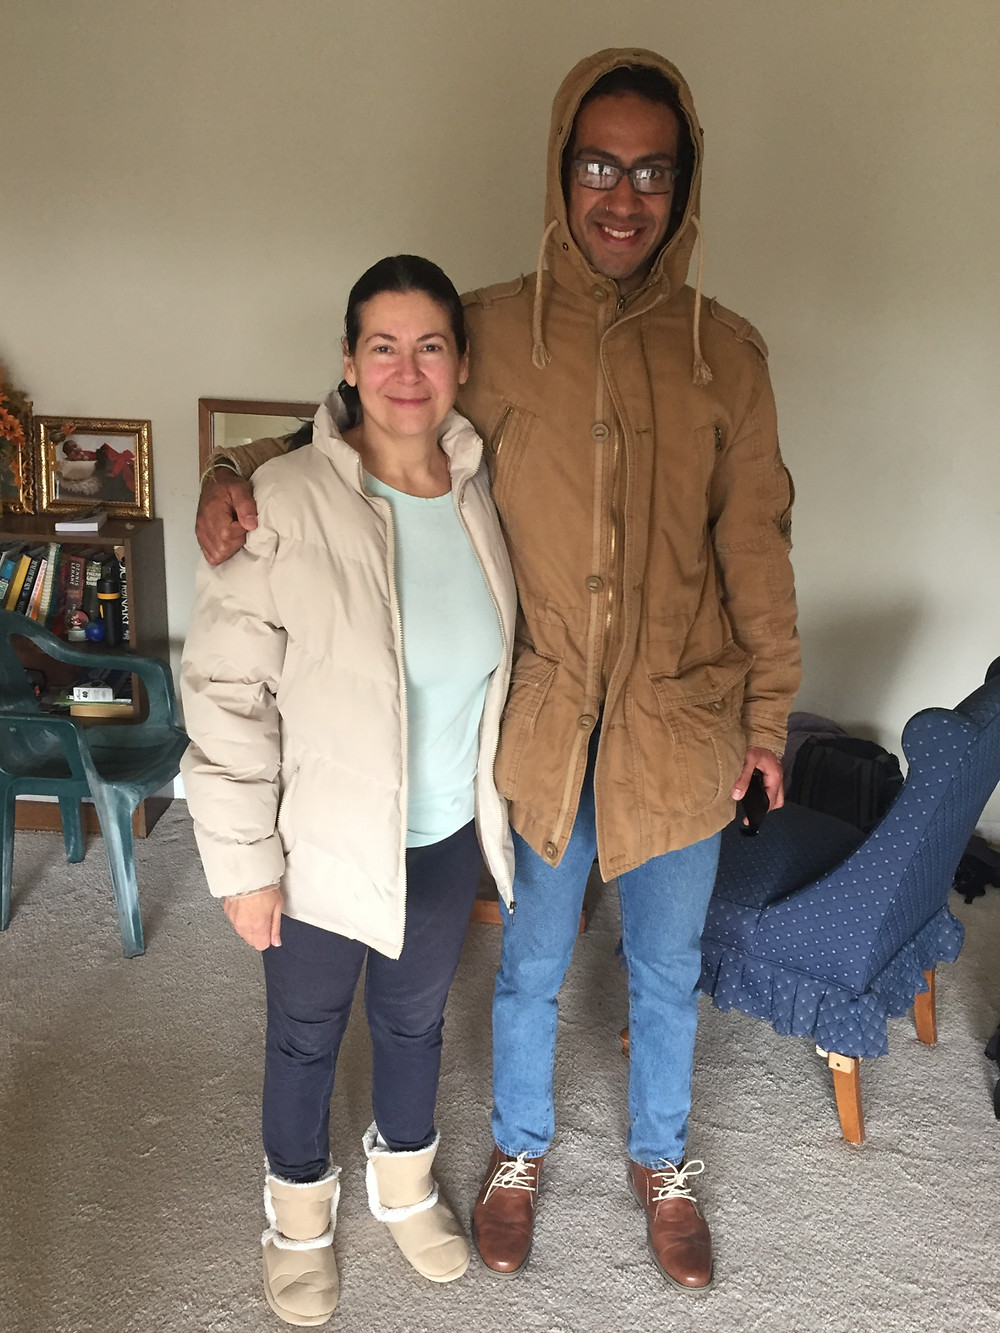 adult son and mom in living room